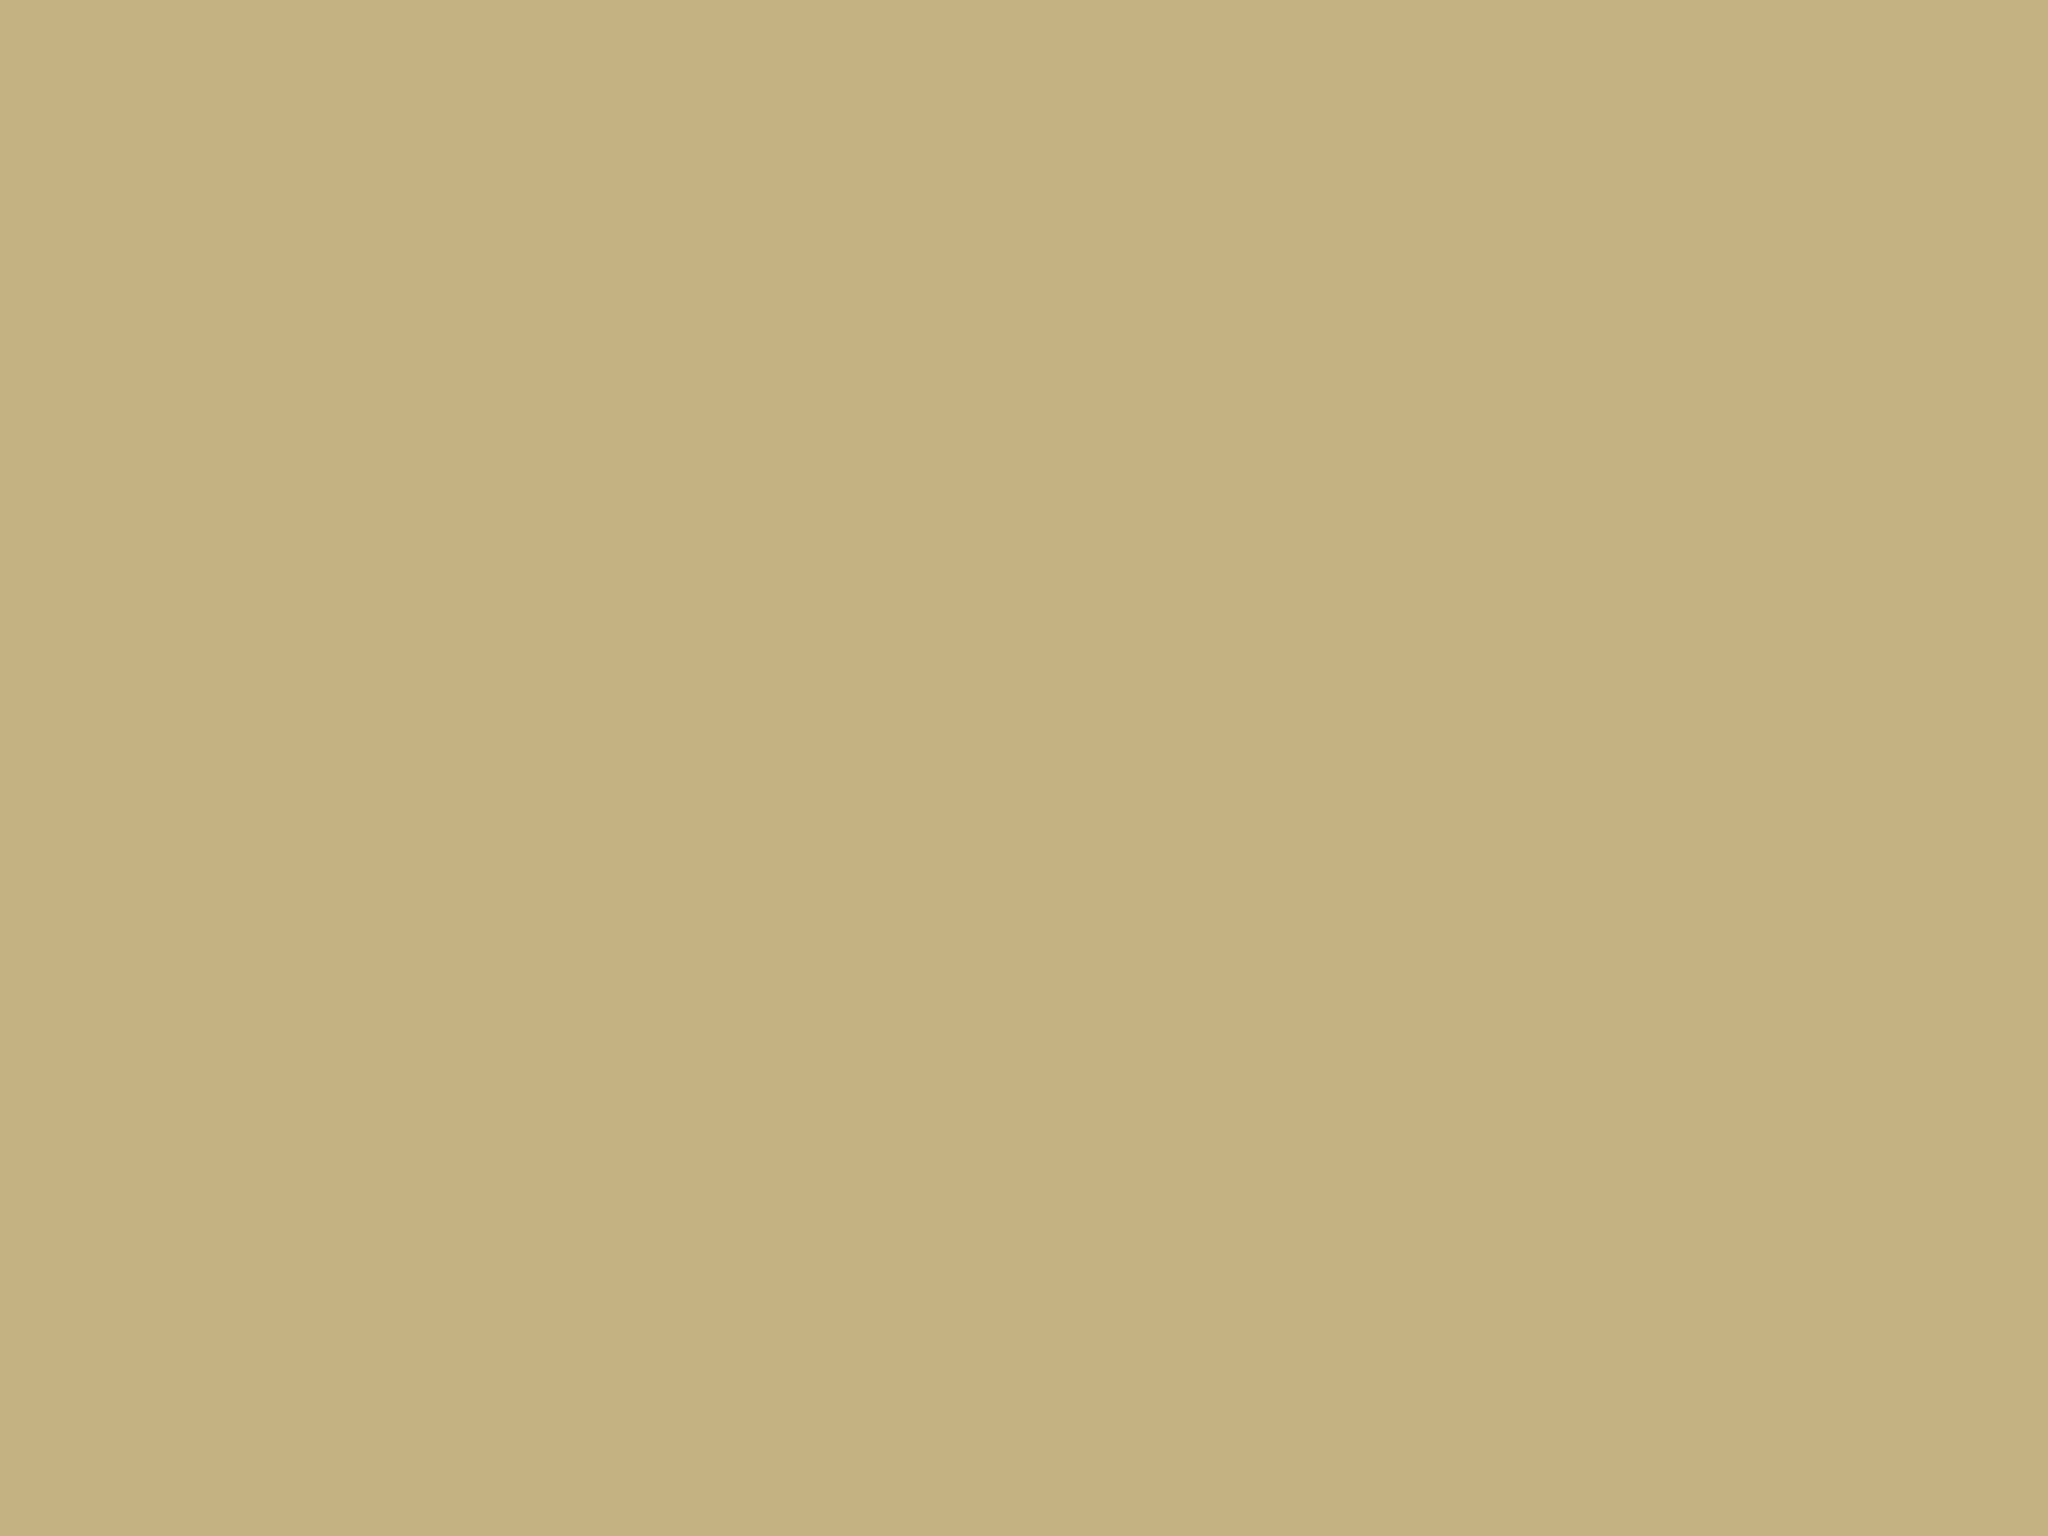 2048x1536 Sand Solid Color Background